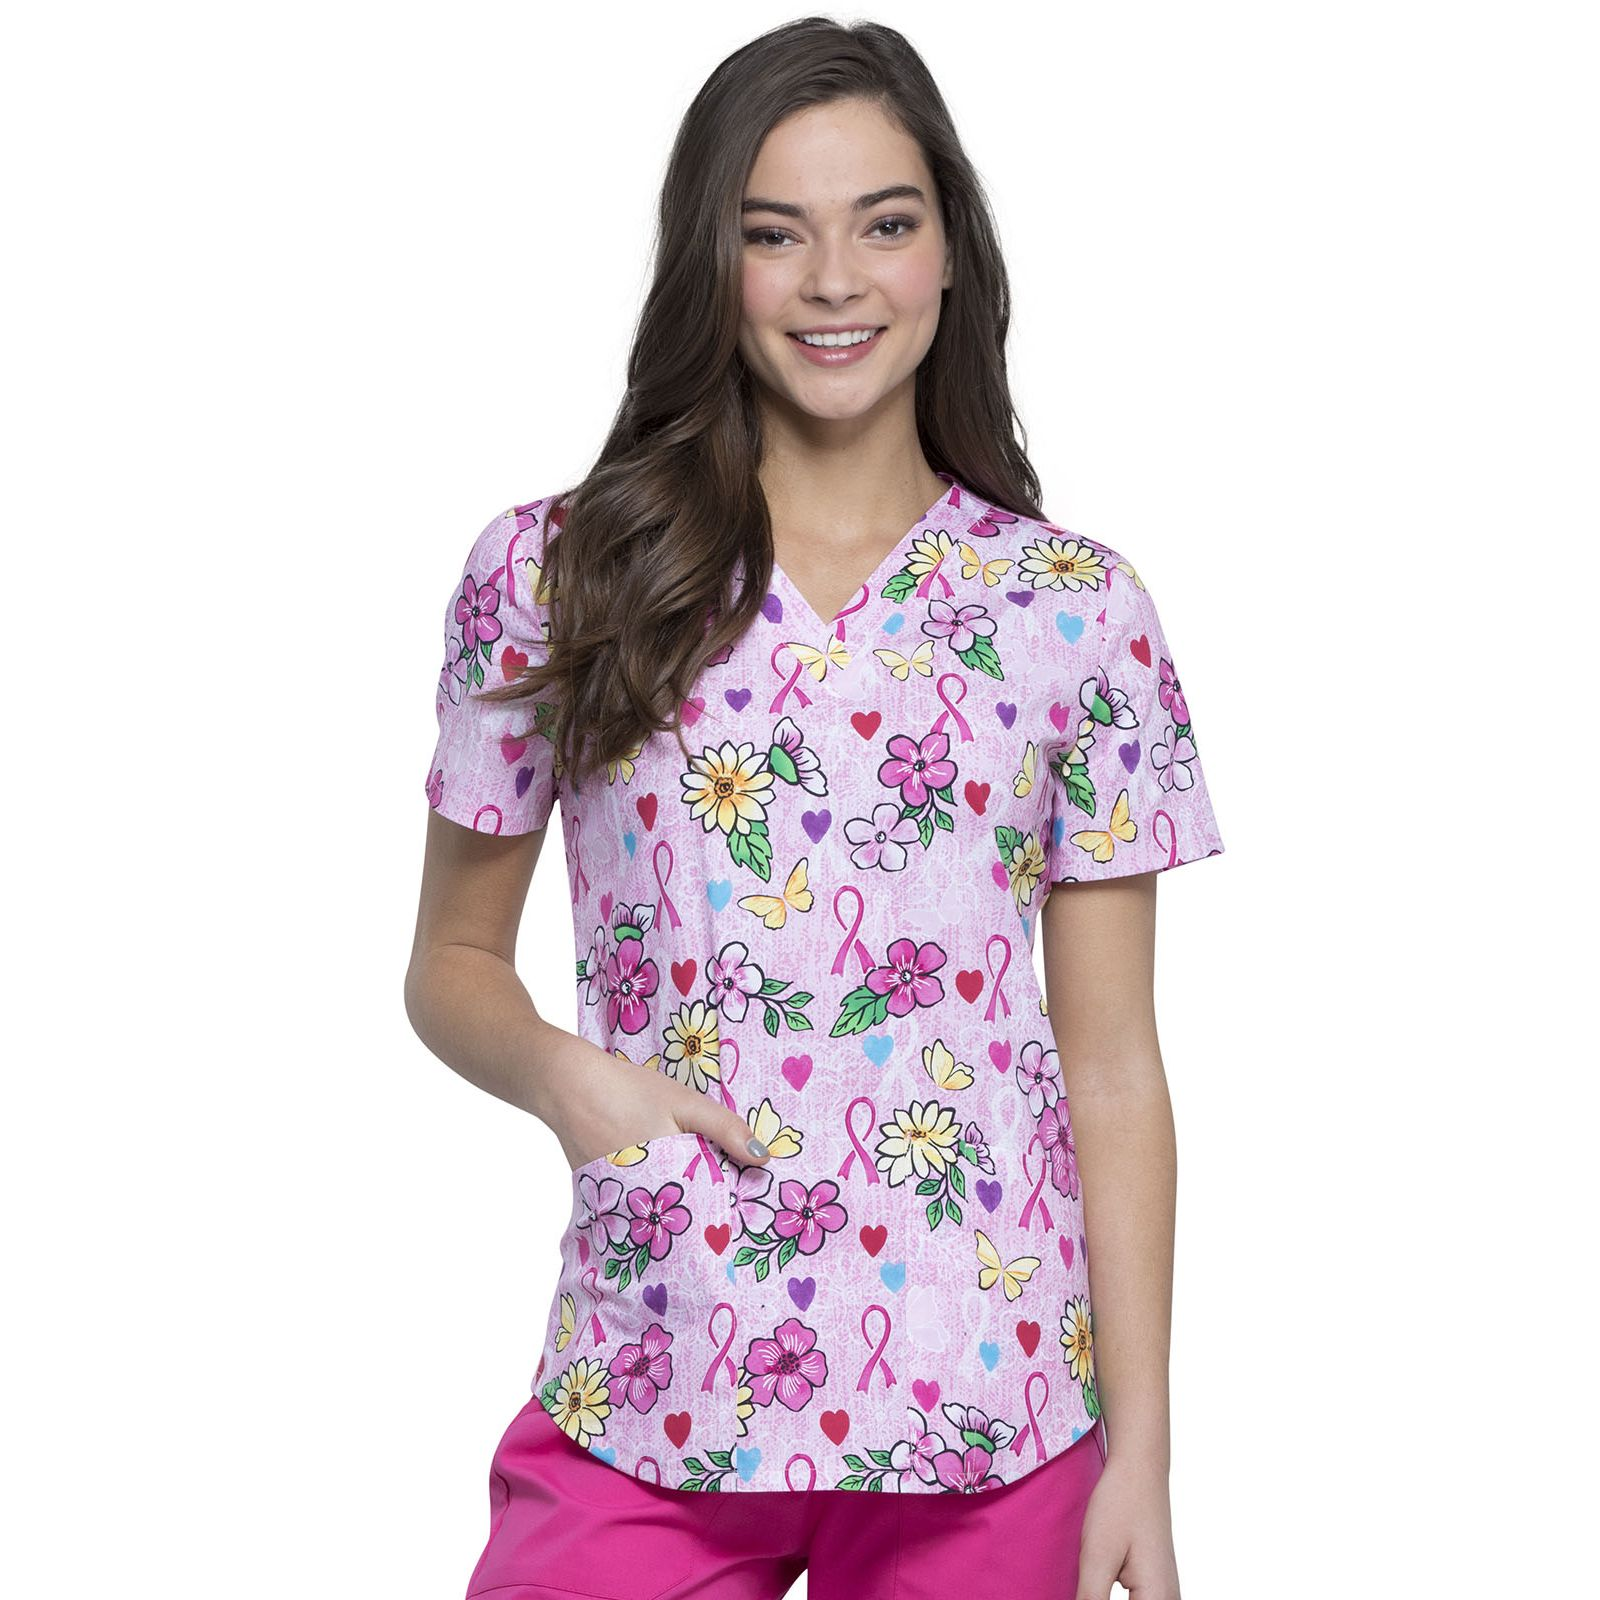 "Blouse médicale imprimée ""Hope Is Beautiful"", Collection Tooniforms Disney (TF652), vue face"